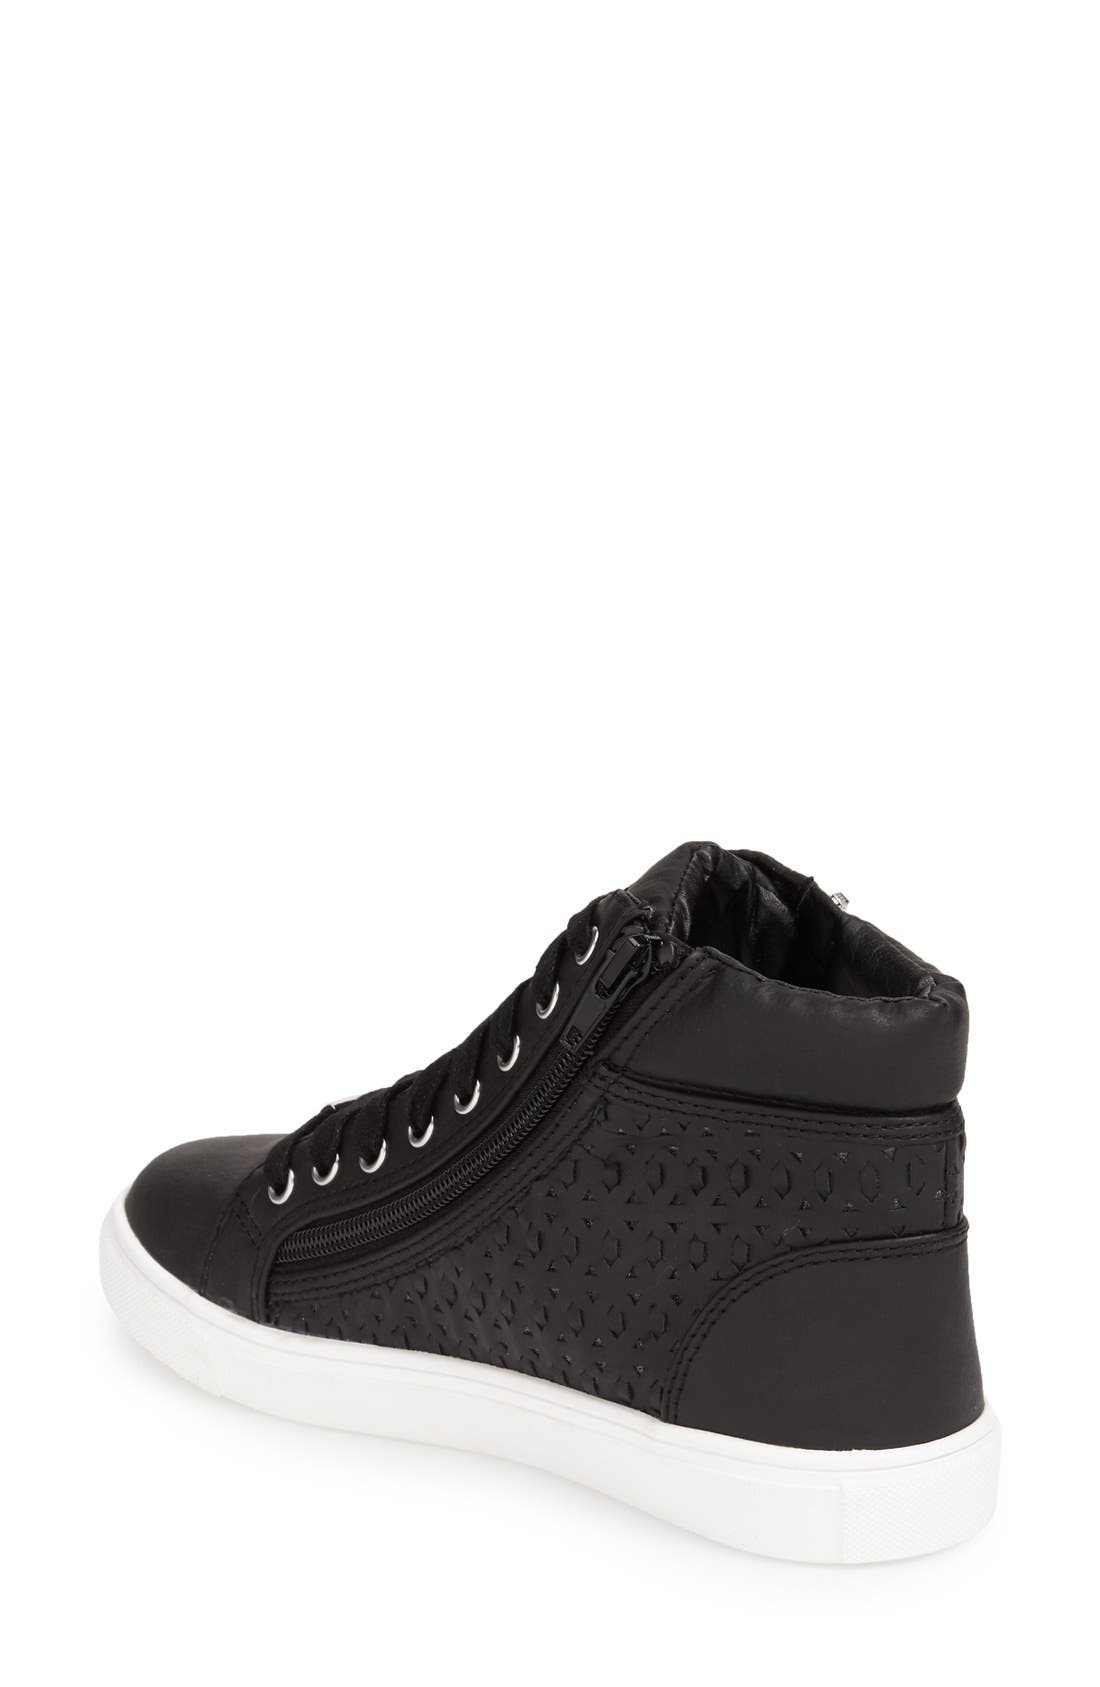 Alternate Image 2  - Steve Madden 'Eiris' Sneaker (Women)